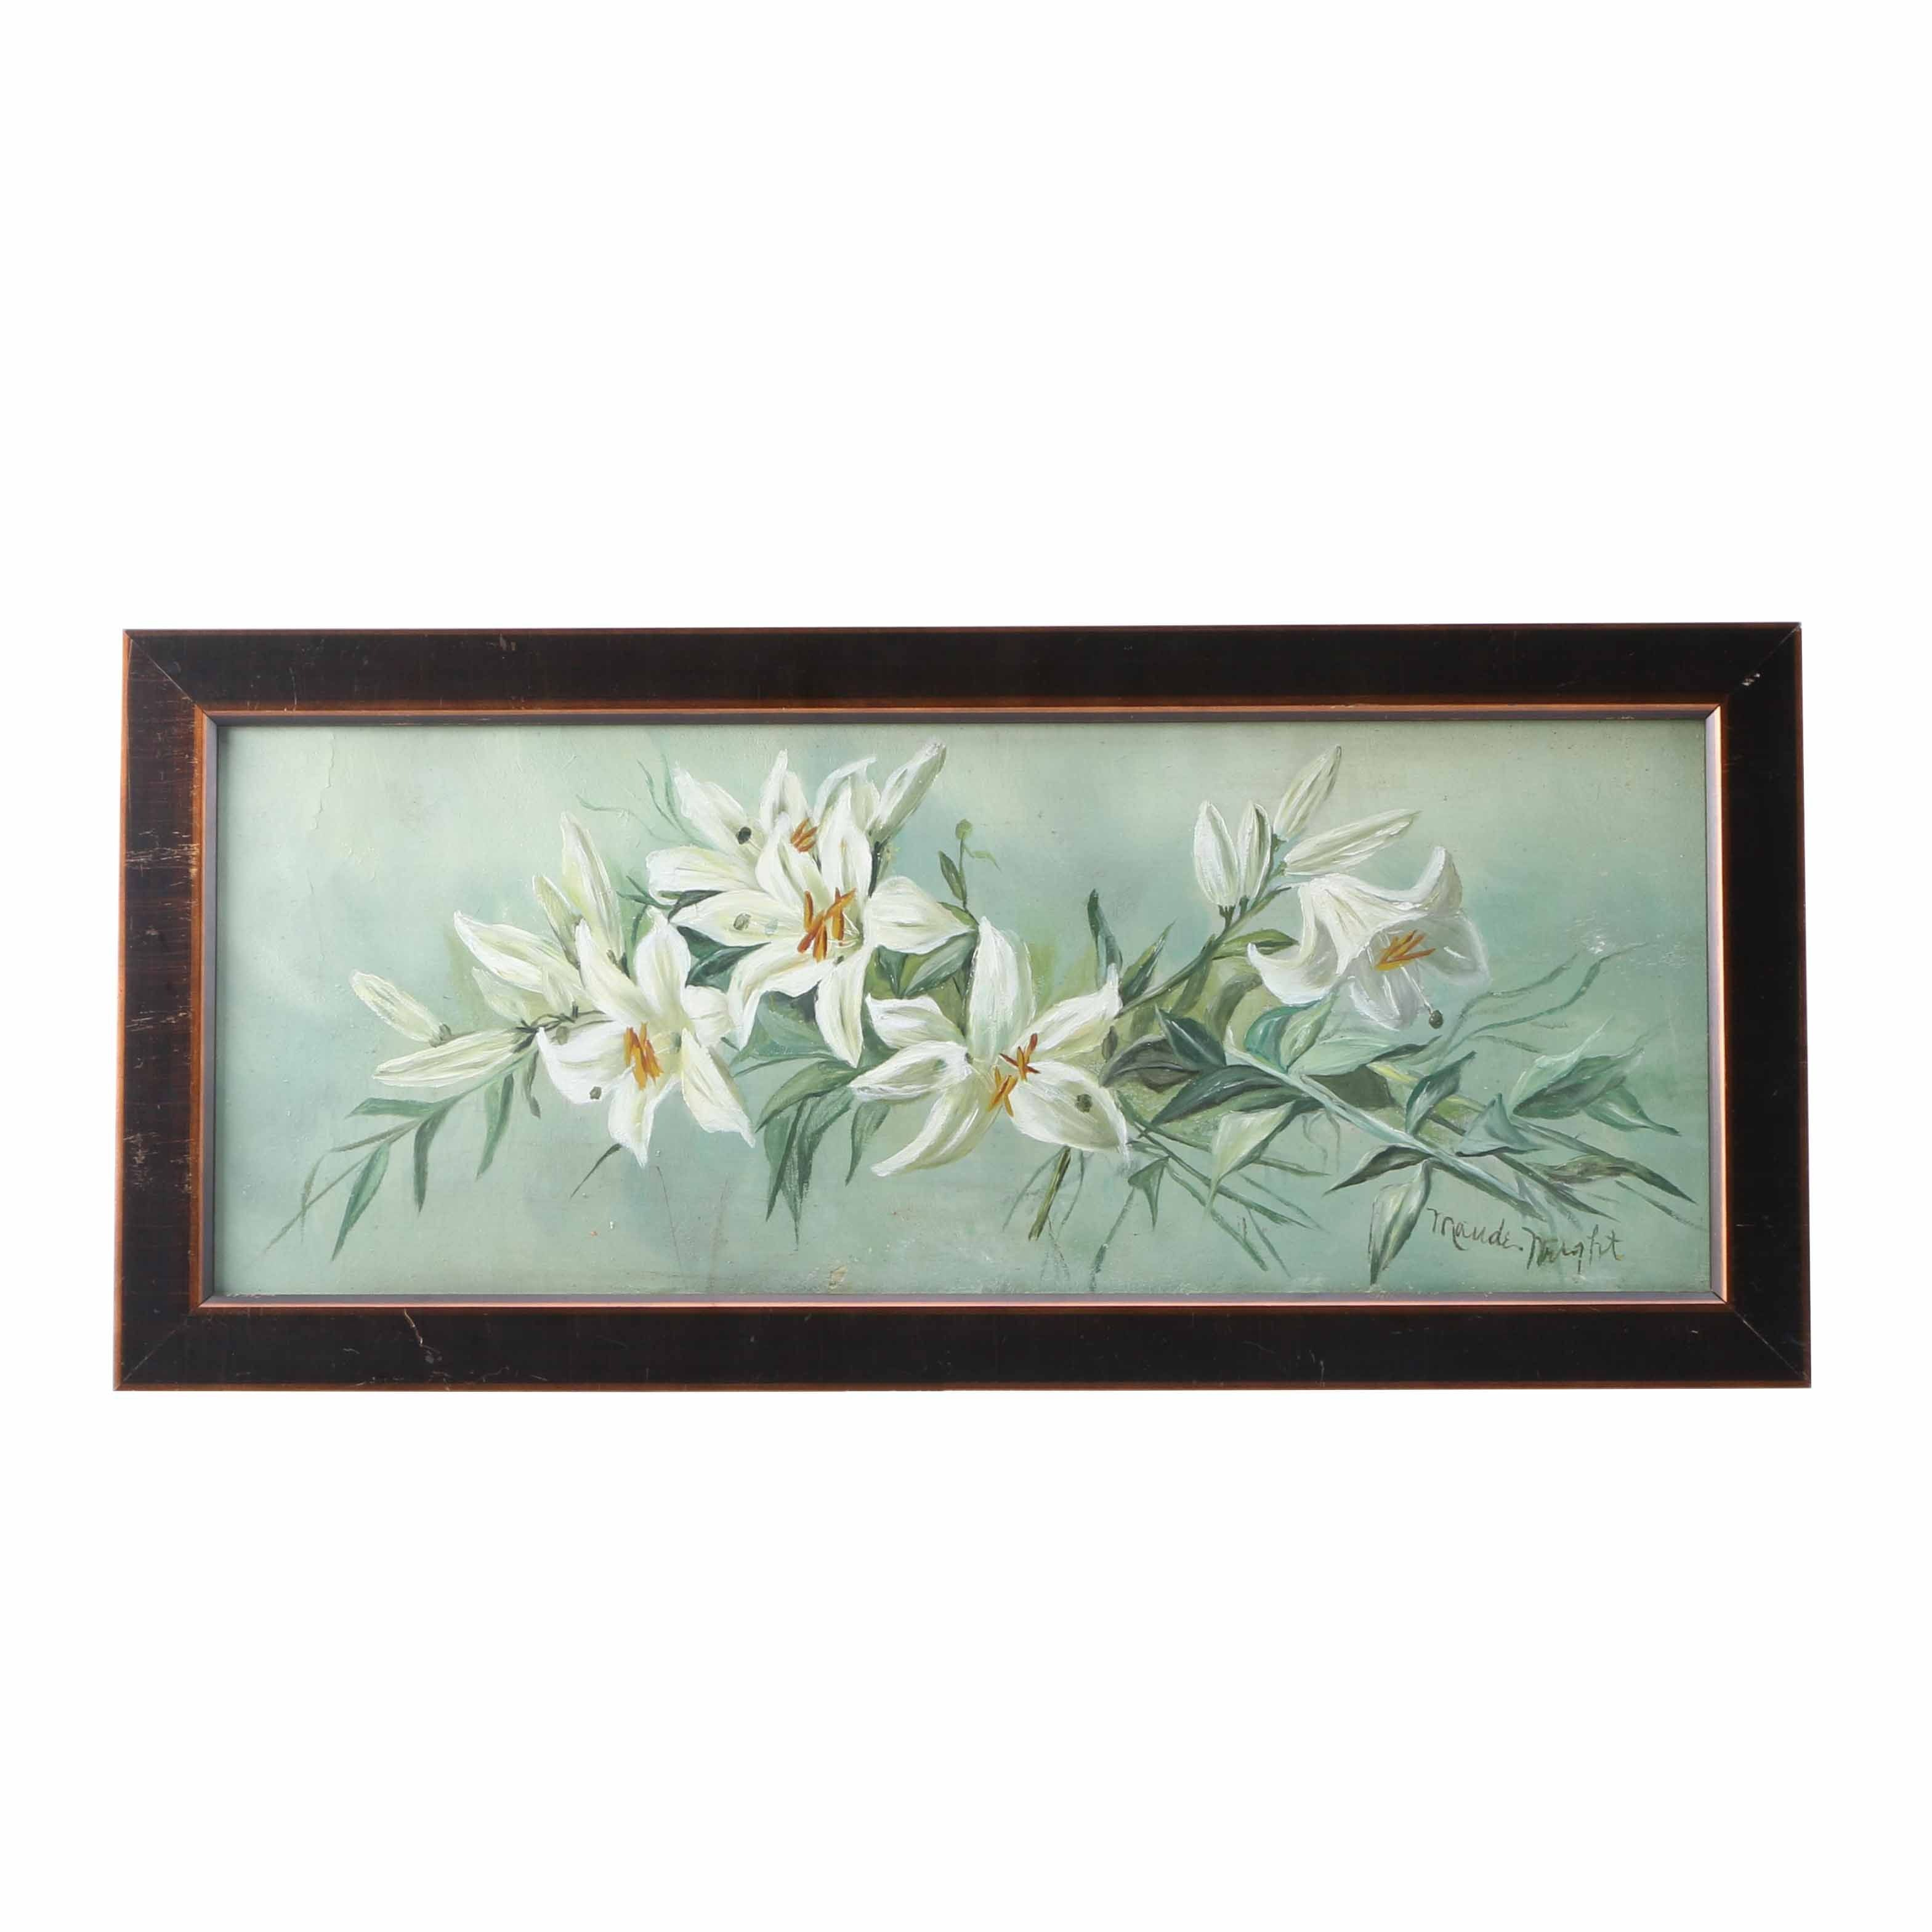 Maude Wright Oil Painting on Board of White Lillies